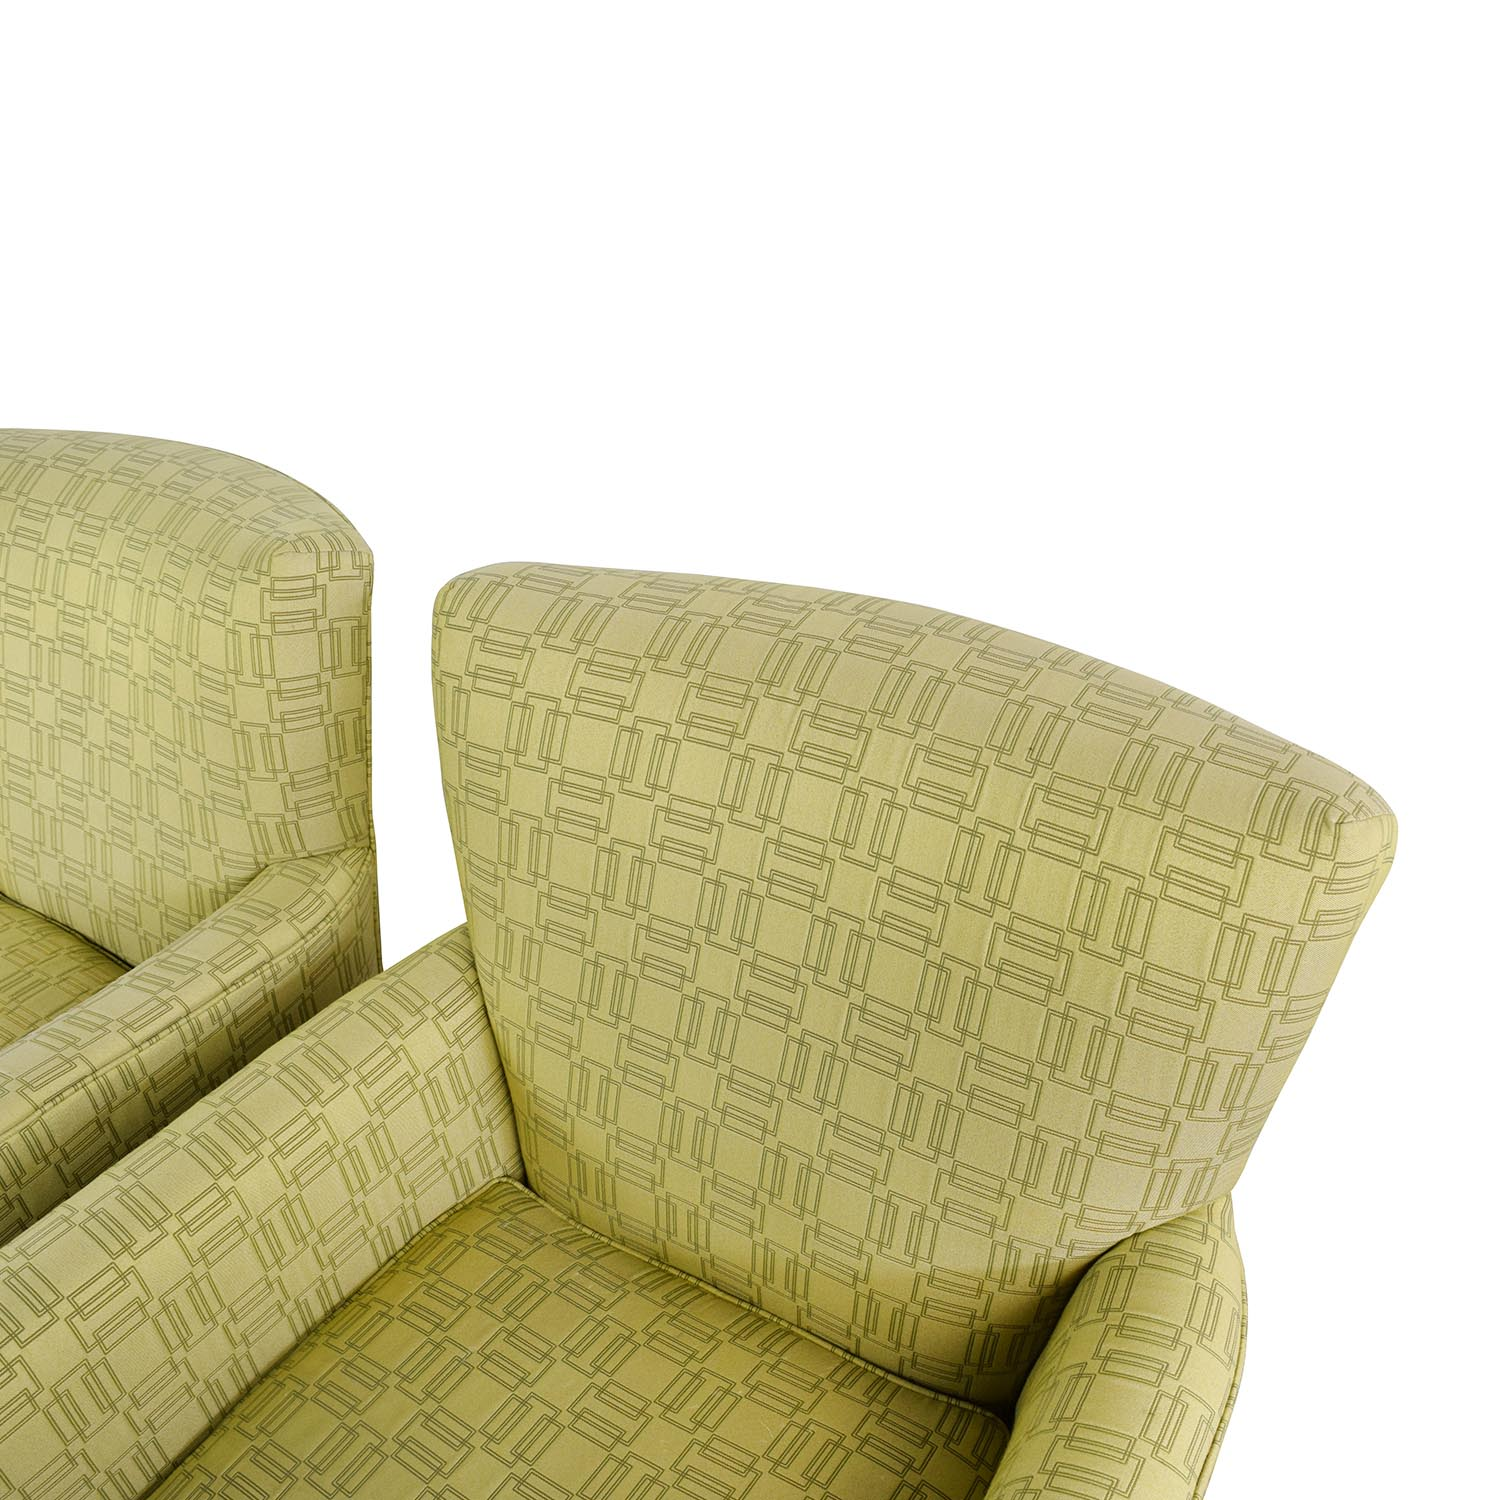 ethan allen recliners chairs chair cover rentals lakeland fl 90 off green upholstered accent